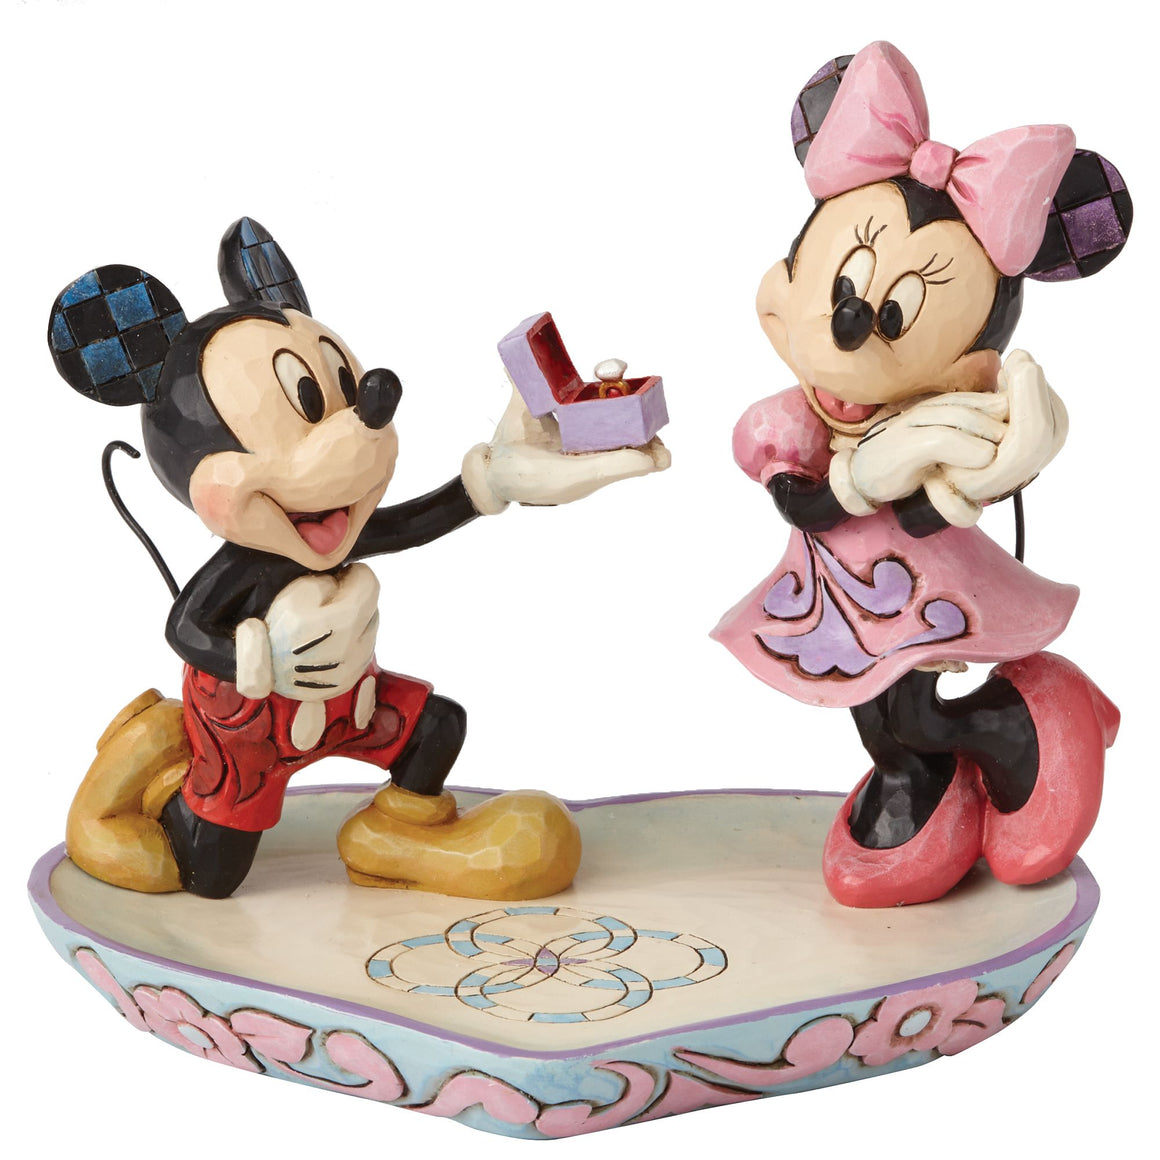 Disney Traditions A Magical Moment (Mickey Proposing to Minnie Mouse Figurine)